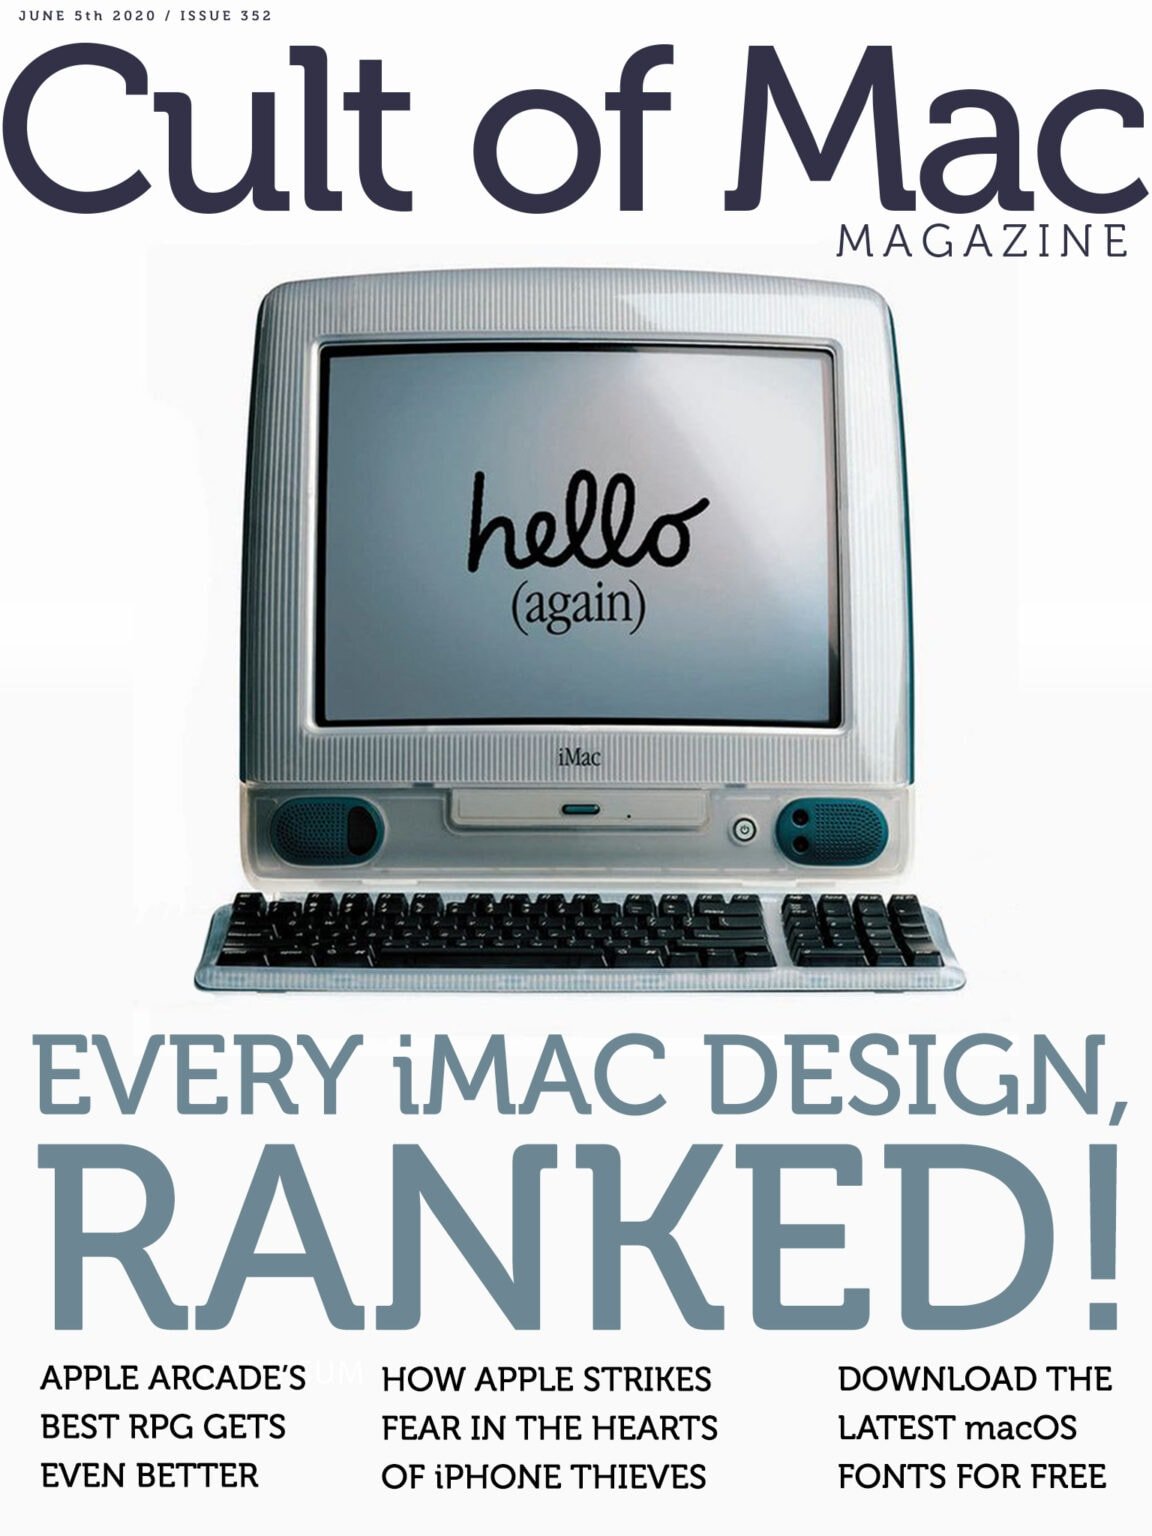 Every iMac design ranked.